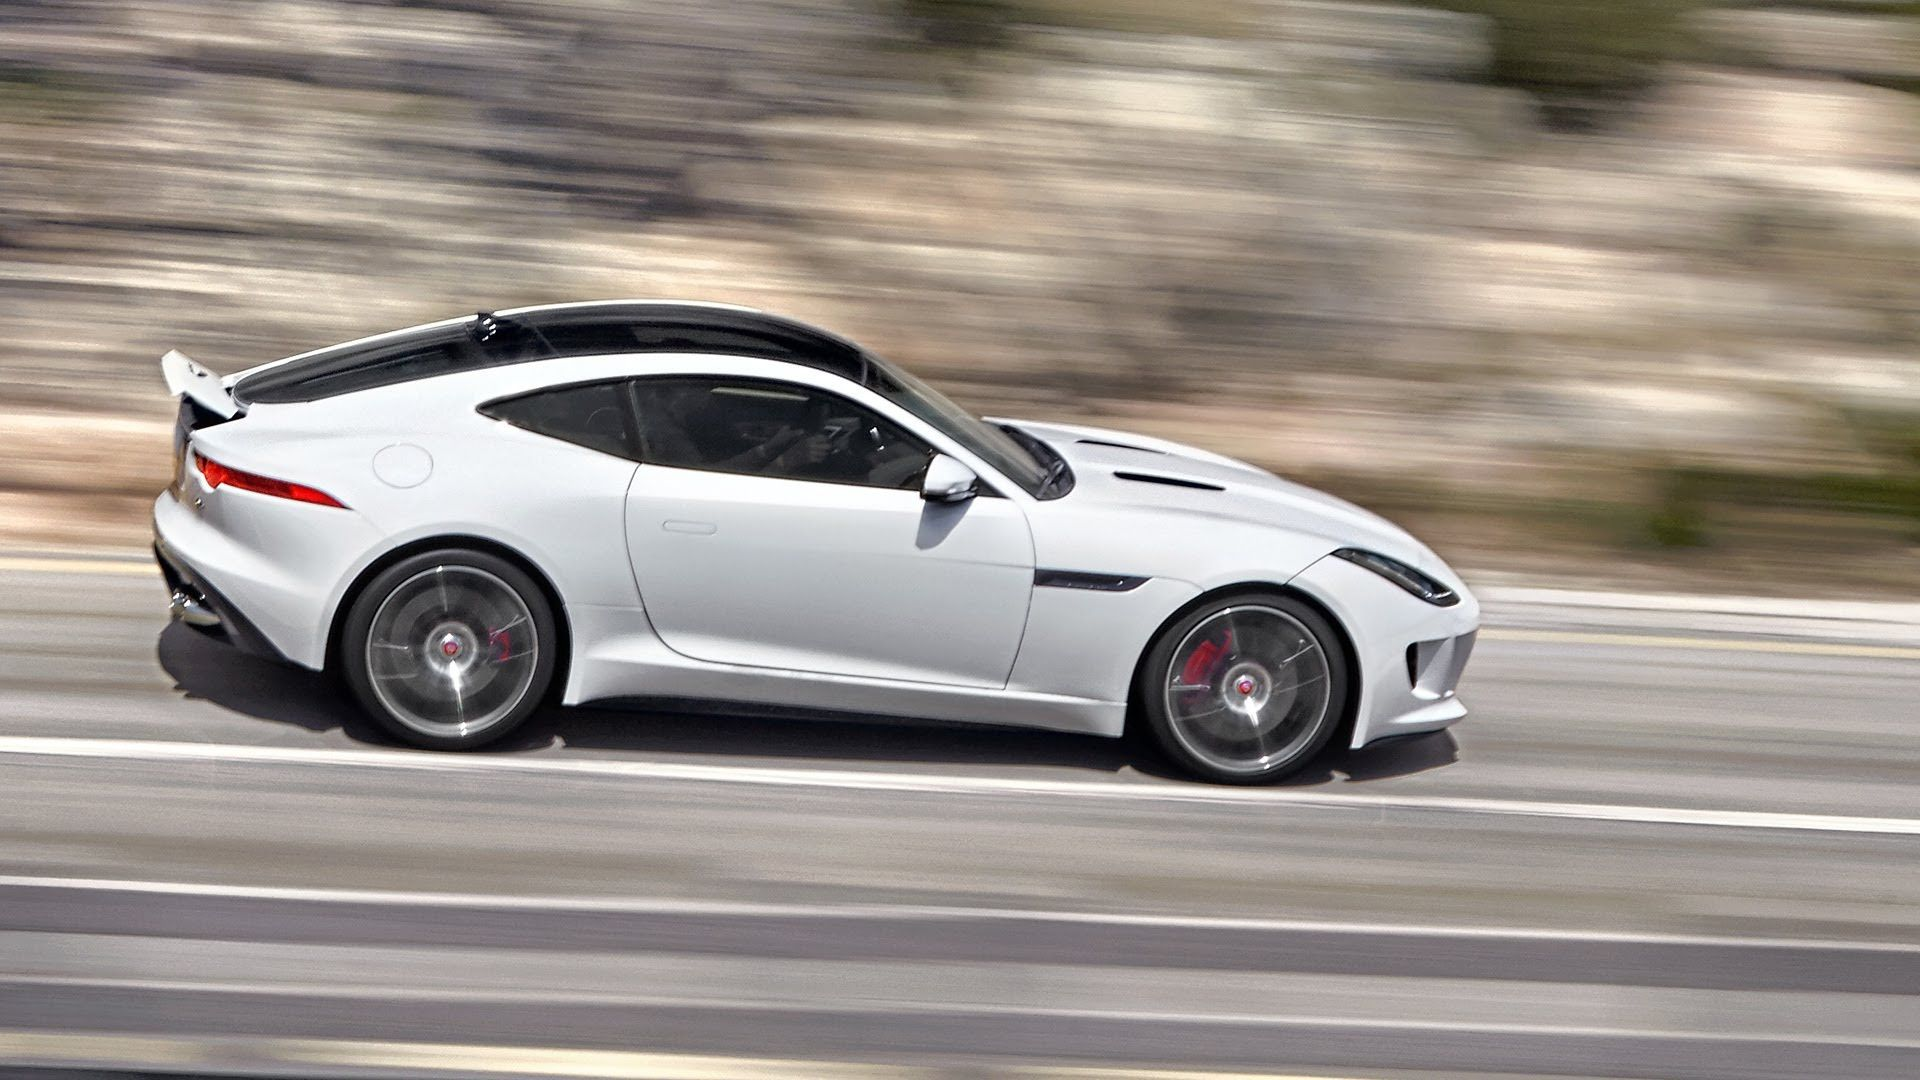 2015 Jaguar F Type R Coupe Hd Wallpaper 1920 1080 Wallpaper